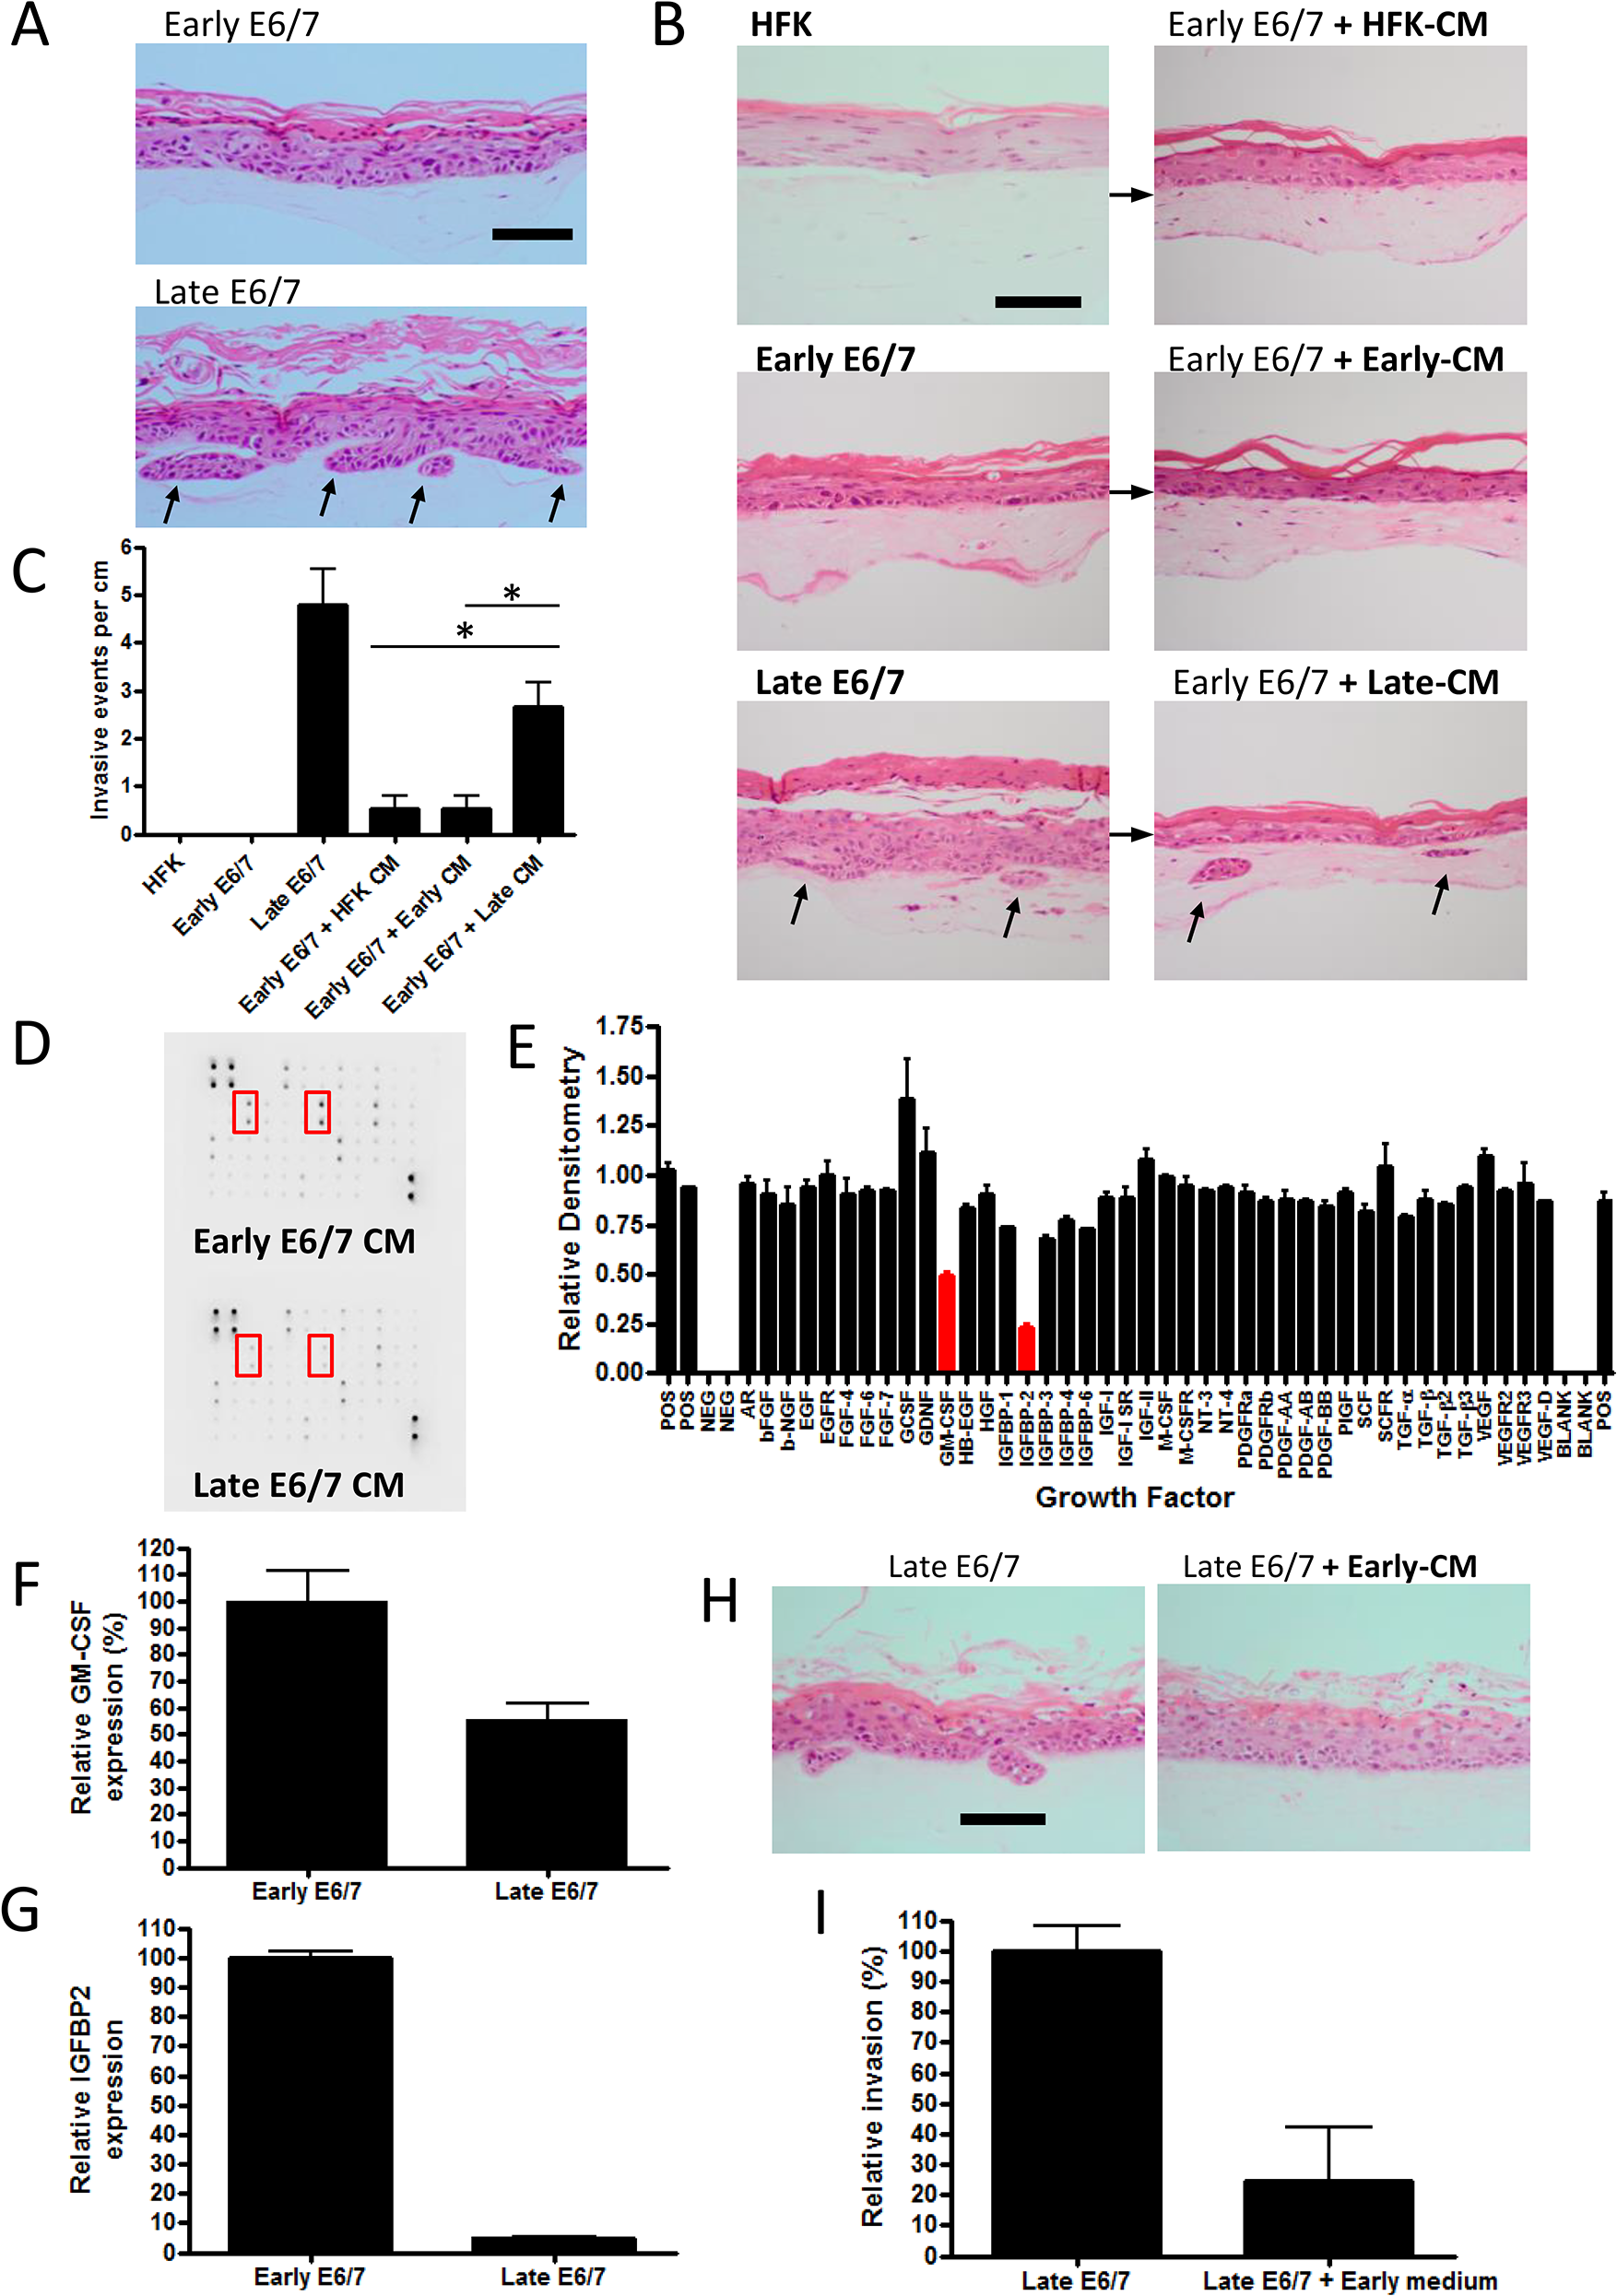 Prolonged passage of HPV16 E6/7 immortalised keratinocytes generates an invasive epithelium.